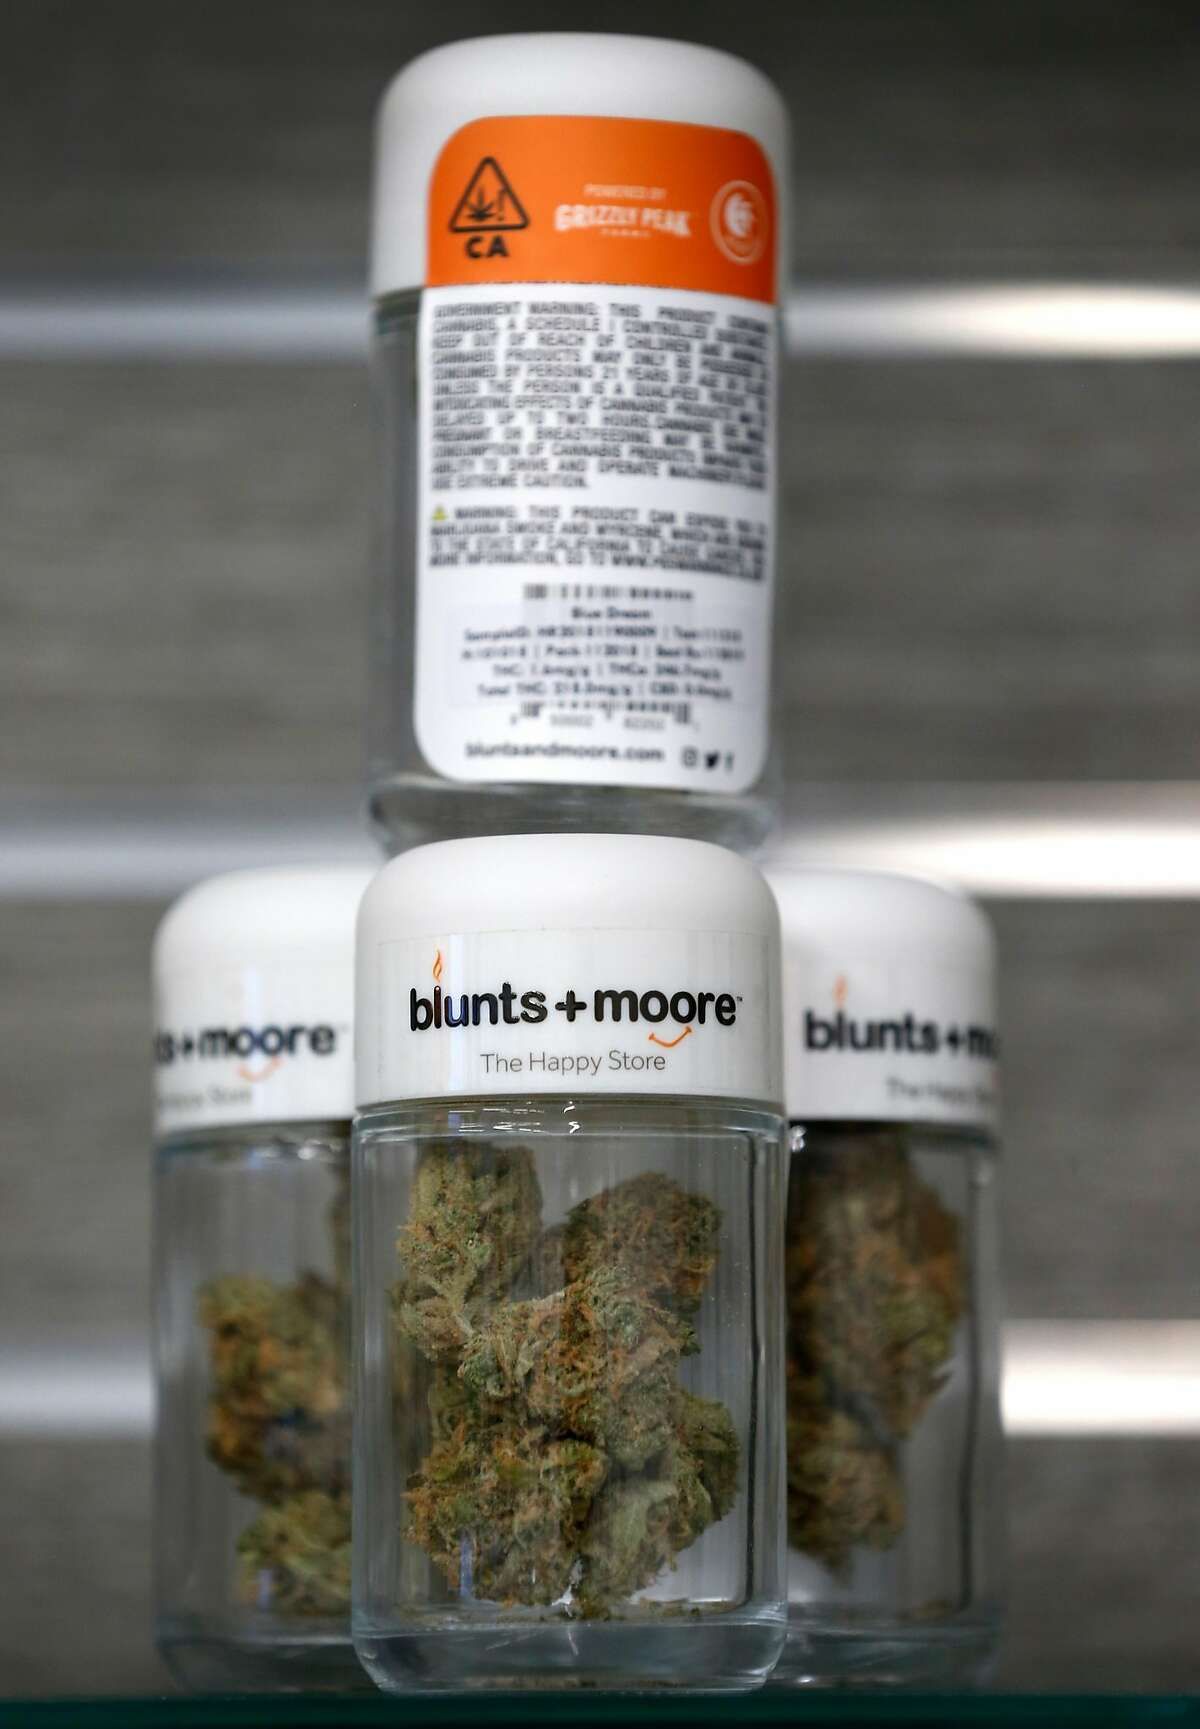 Product is displayed on a shelf at the Blunts + Moore cannabis dispensary in Oakland, Calif. on Thursday, Nov. 29, 2018, the first dispensary to open through the city's cannabis equity program.